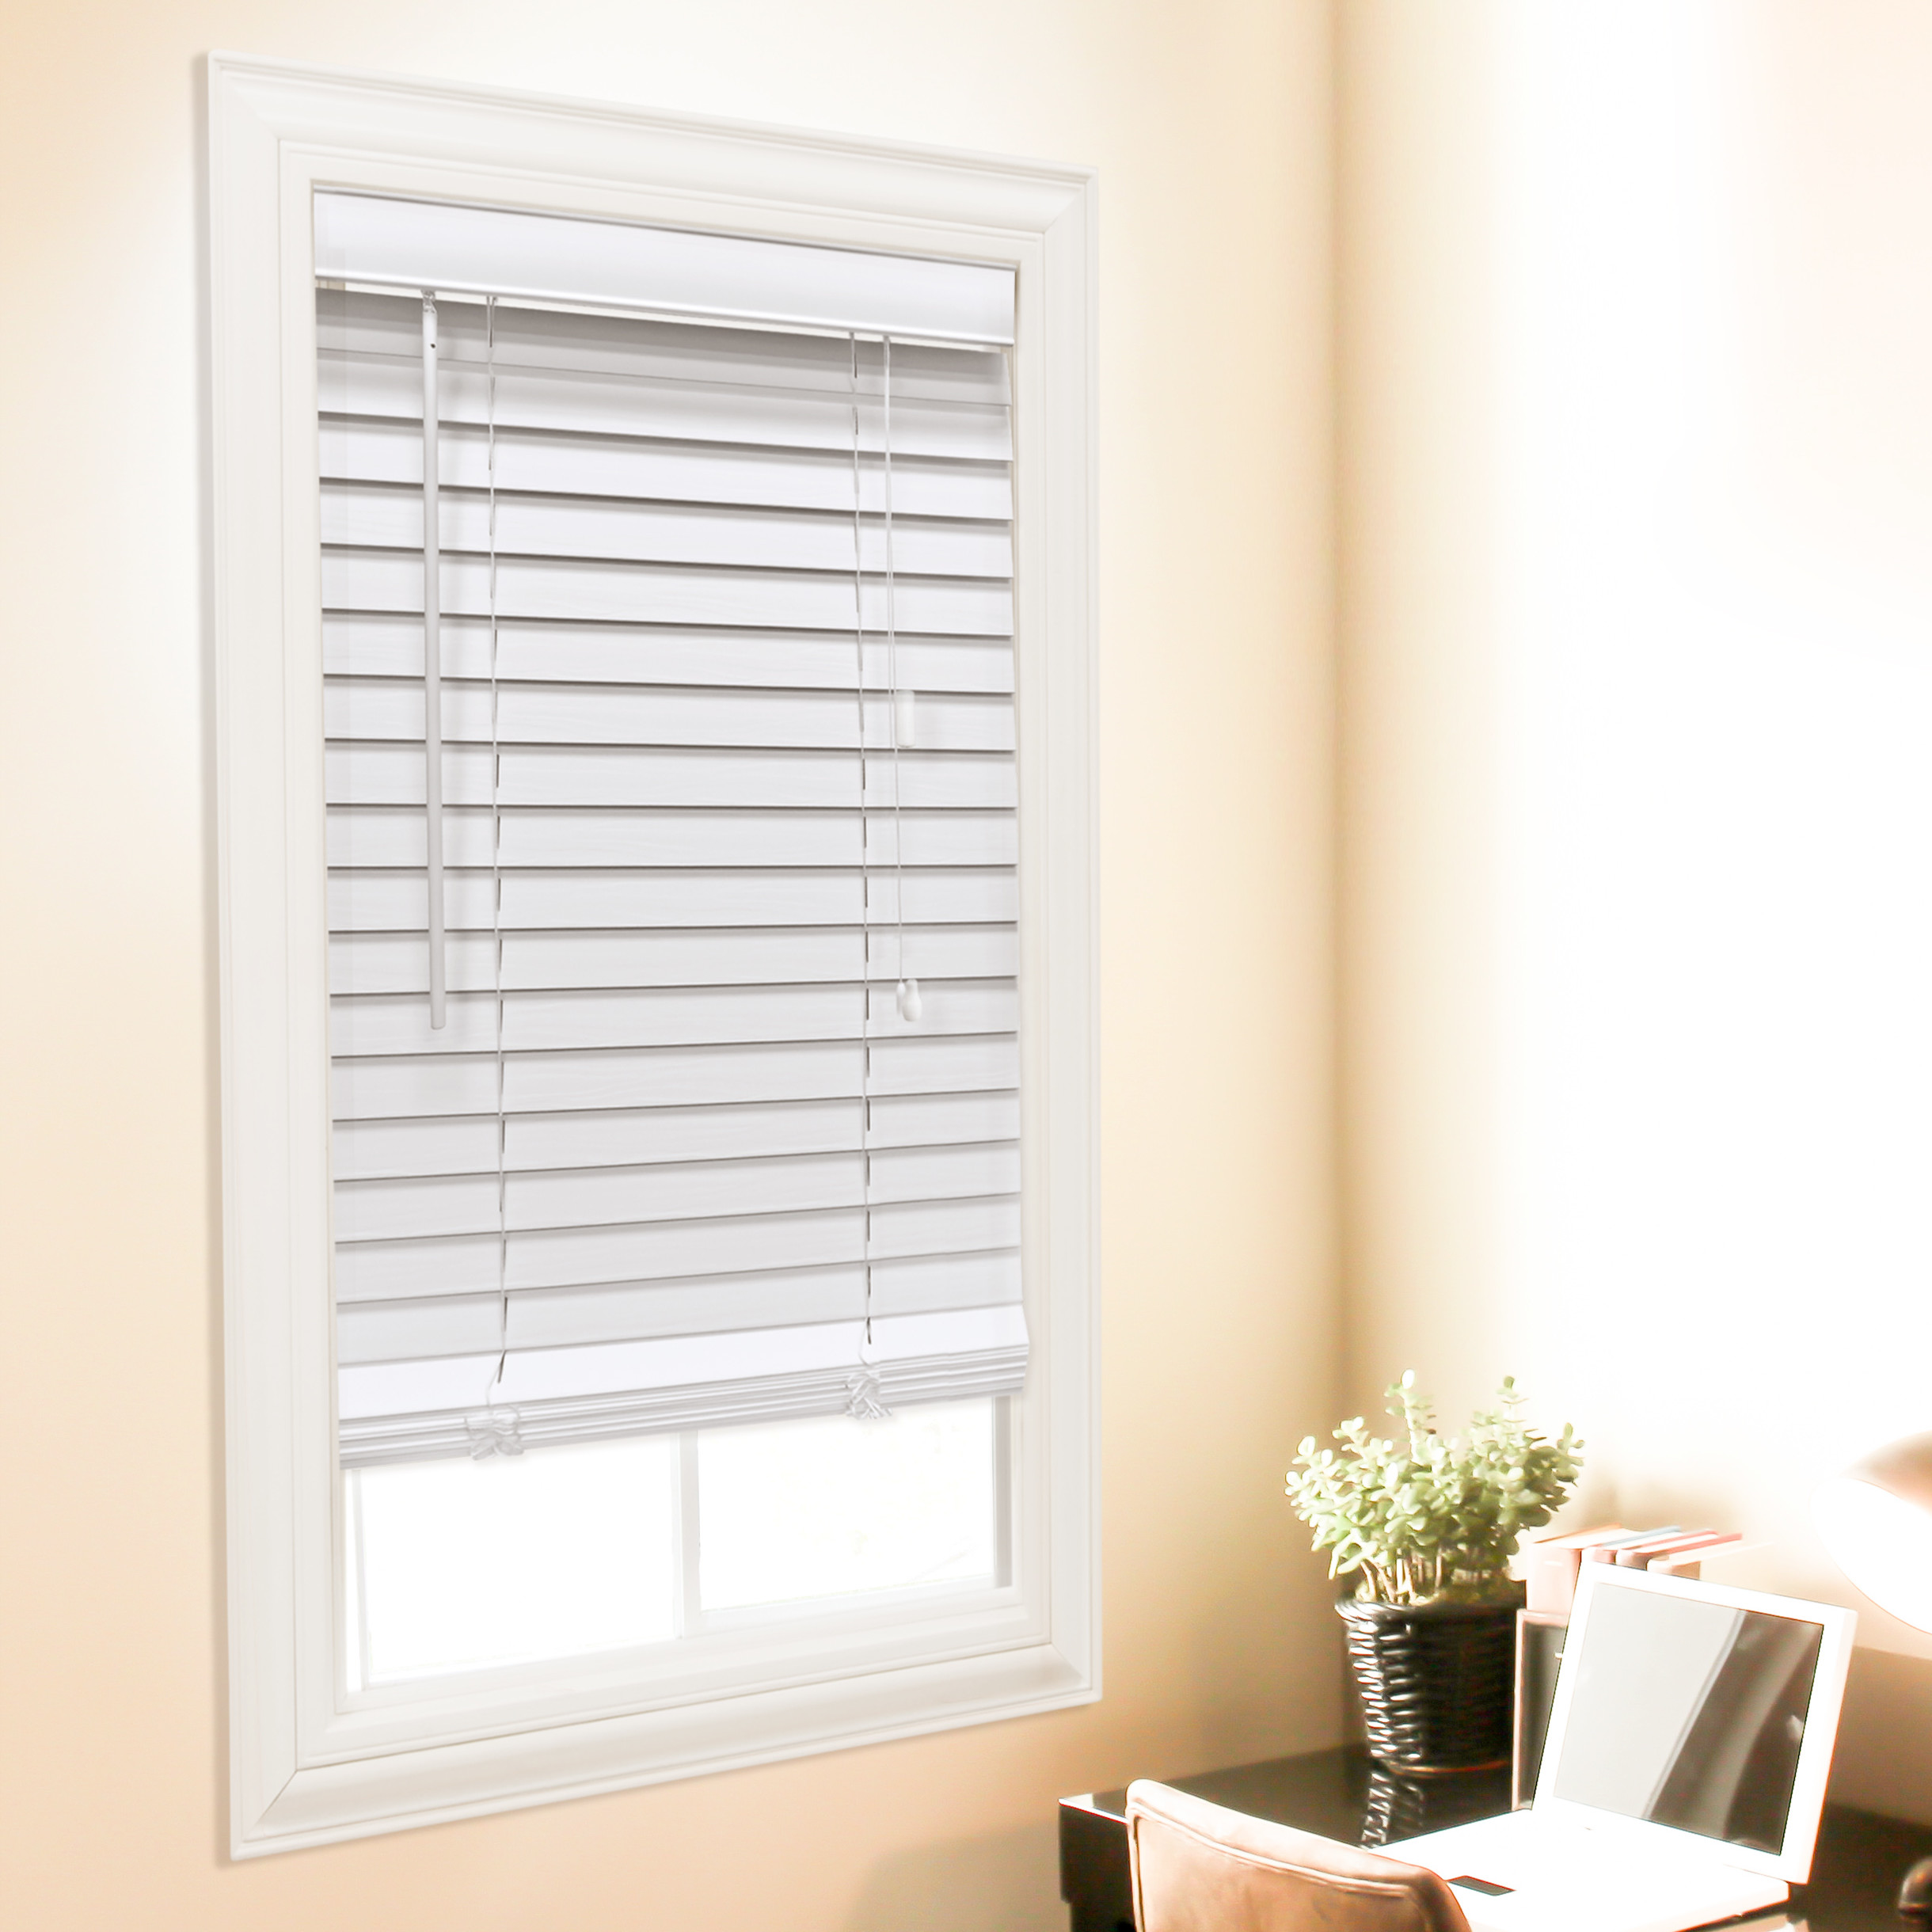 Excellent Menards Window Blinds for Best Window Blind Ideas: Bali Blinds | Menards Card Payment | Menards Window Blinds